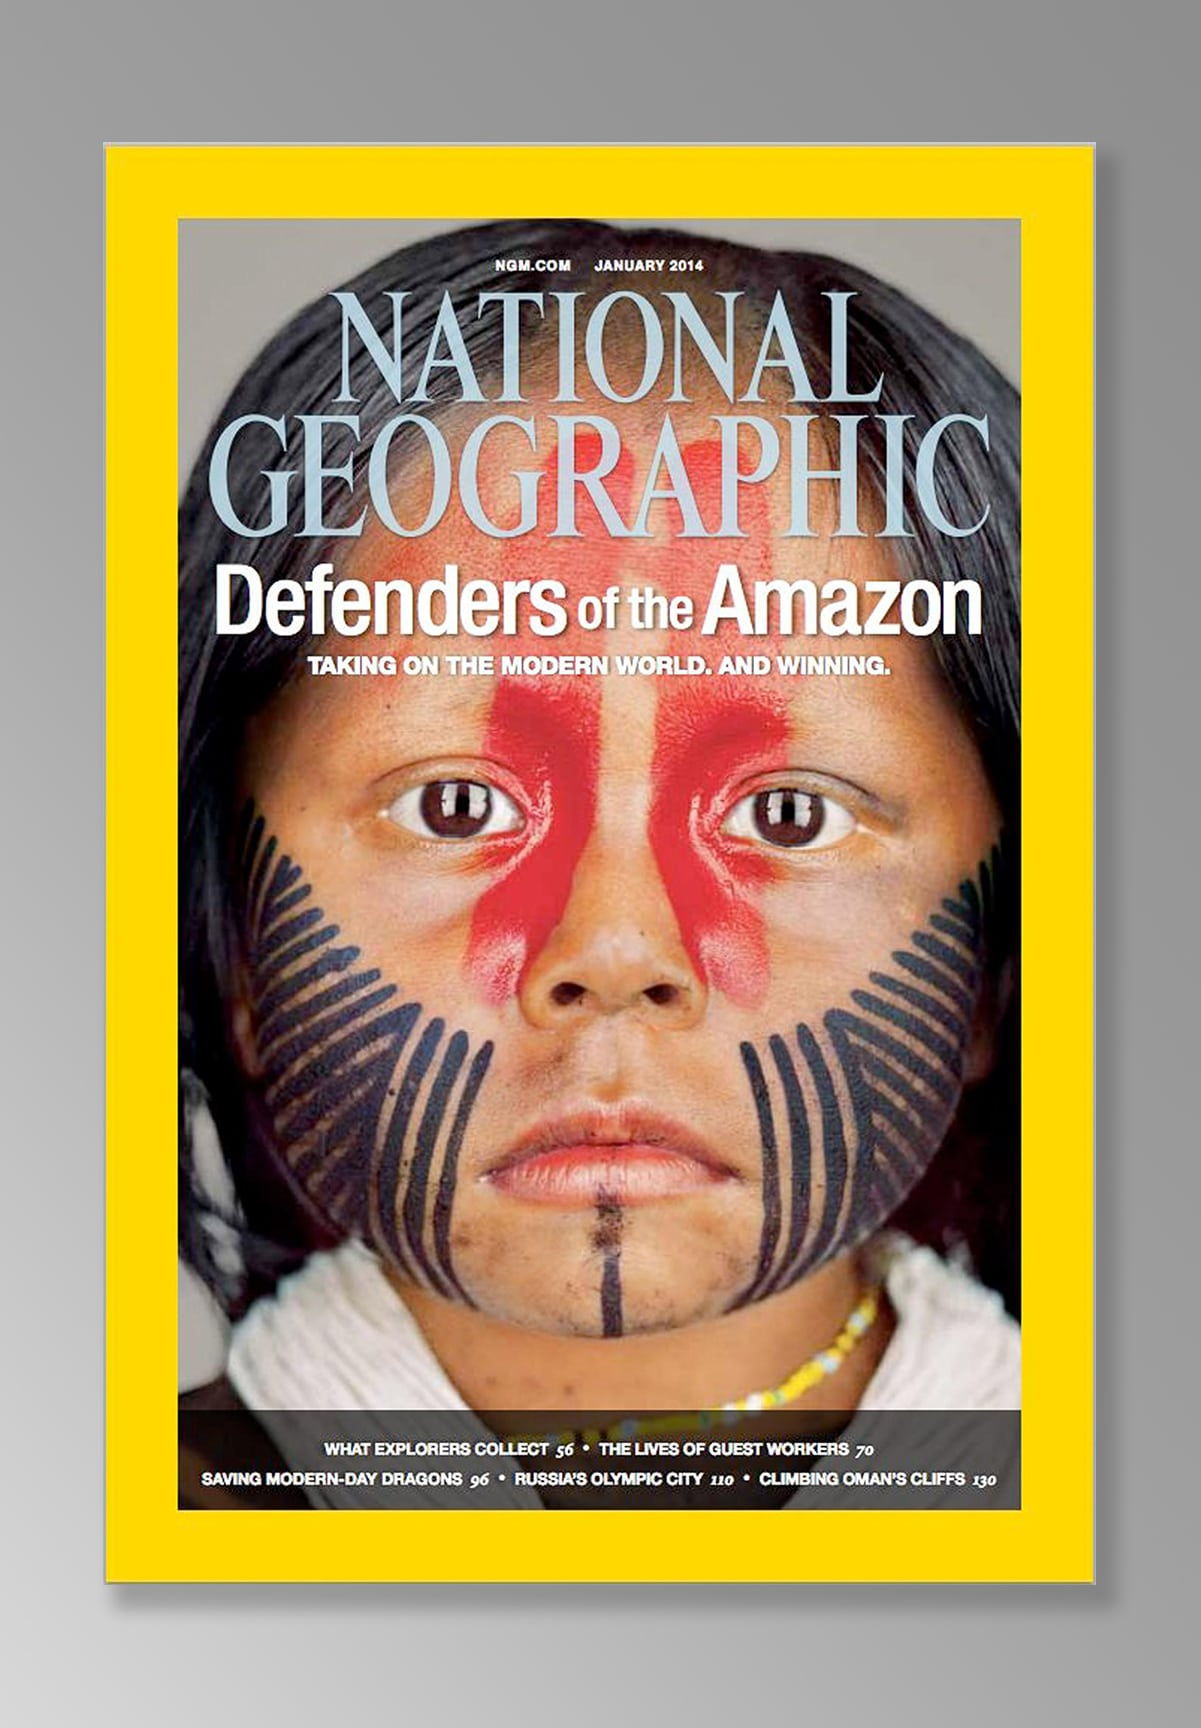 A young Kayapo girl represents her tribe in the Amazon photographed by Martin Schoeller for National Geographic Magazine